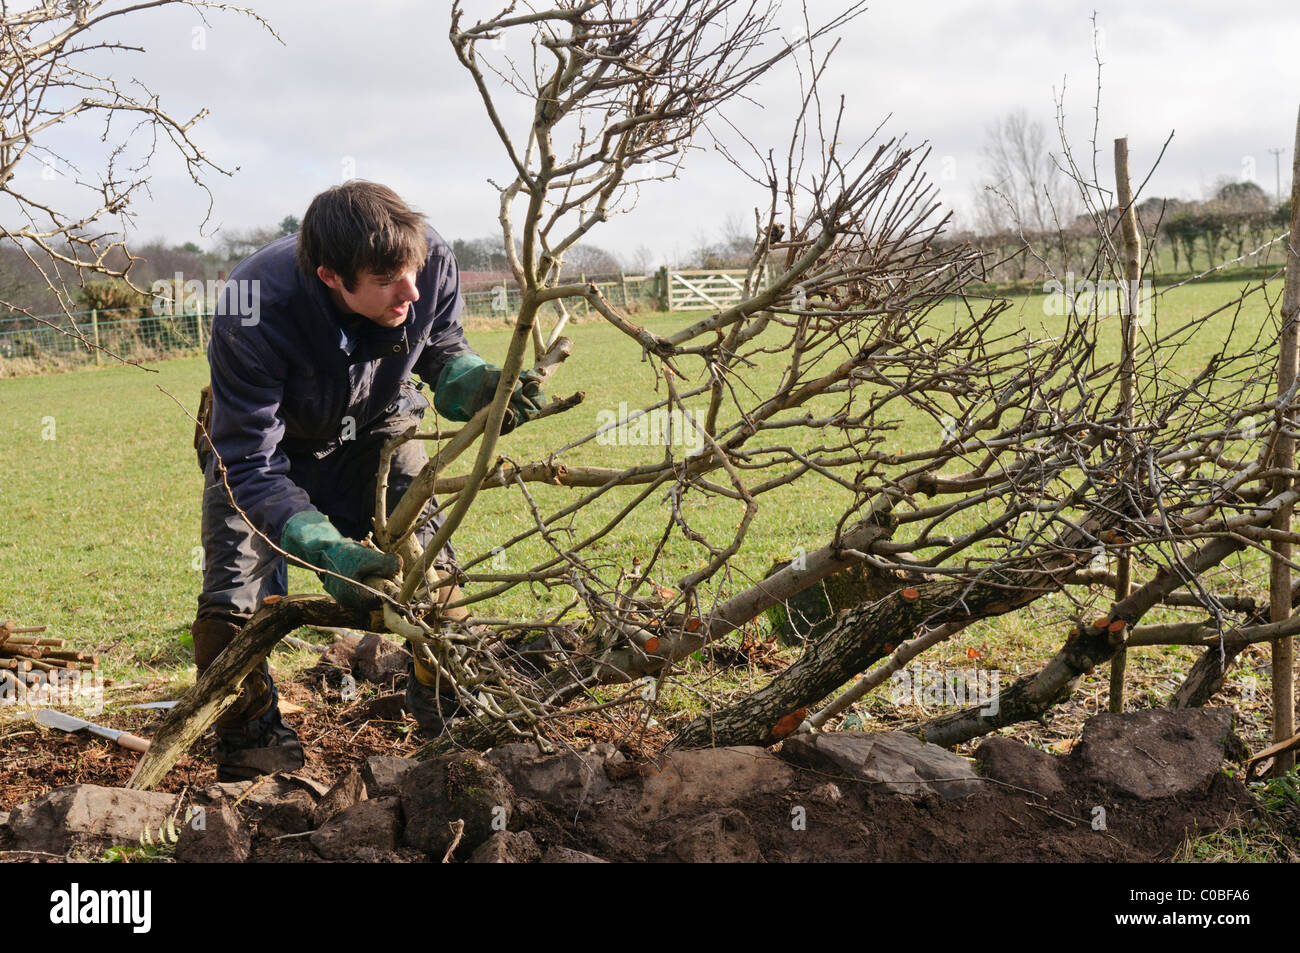 Man layering a hedge - an old traditional Irish method for creating thick hedges in fields - Stock Image